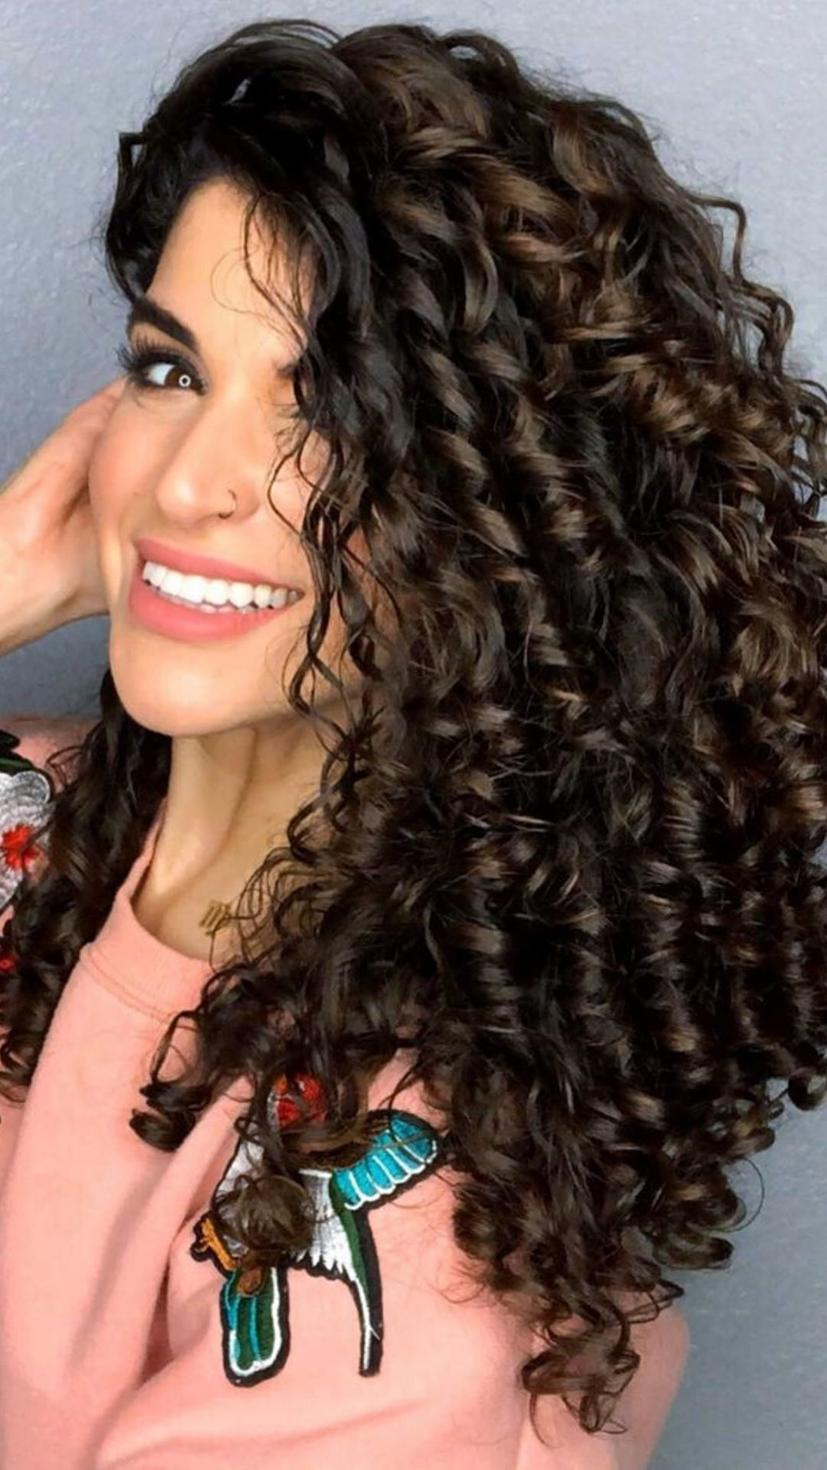 Curly hair trend, Curly hair celebrities, Curly hair, Curly hair influencers, Curly Hair Inspo